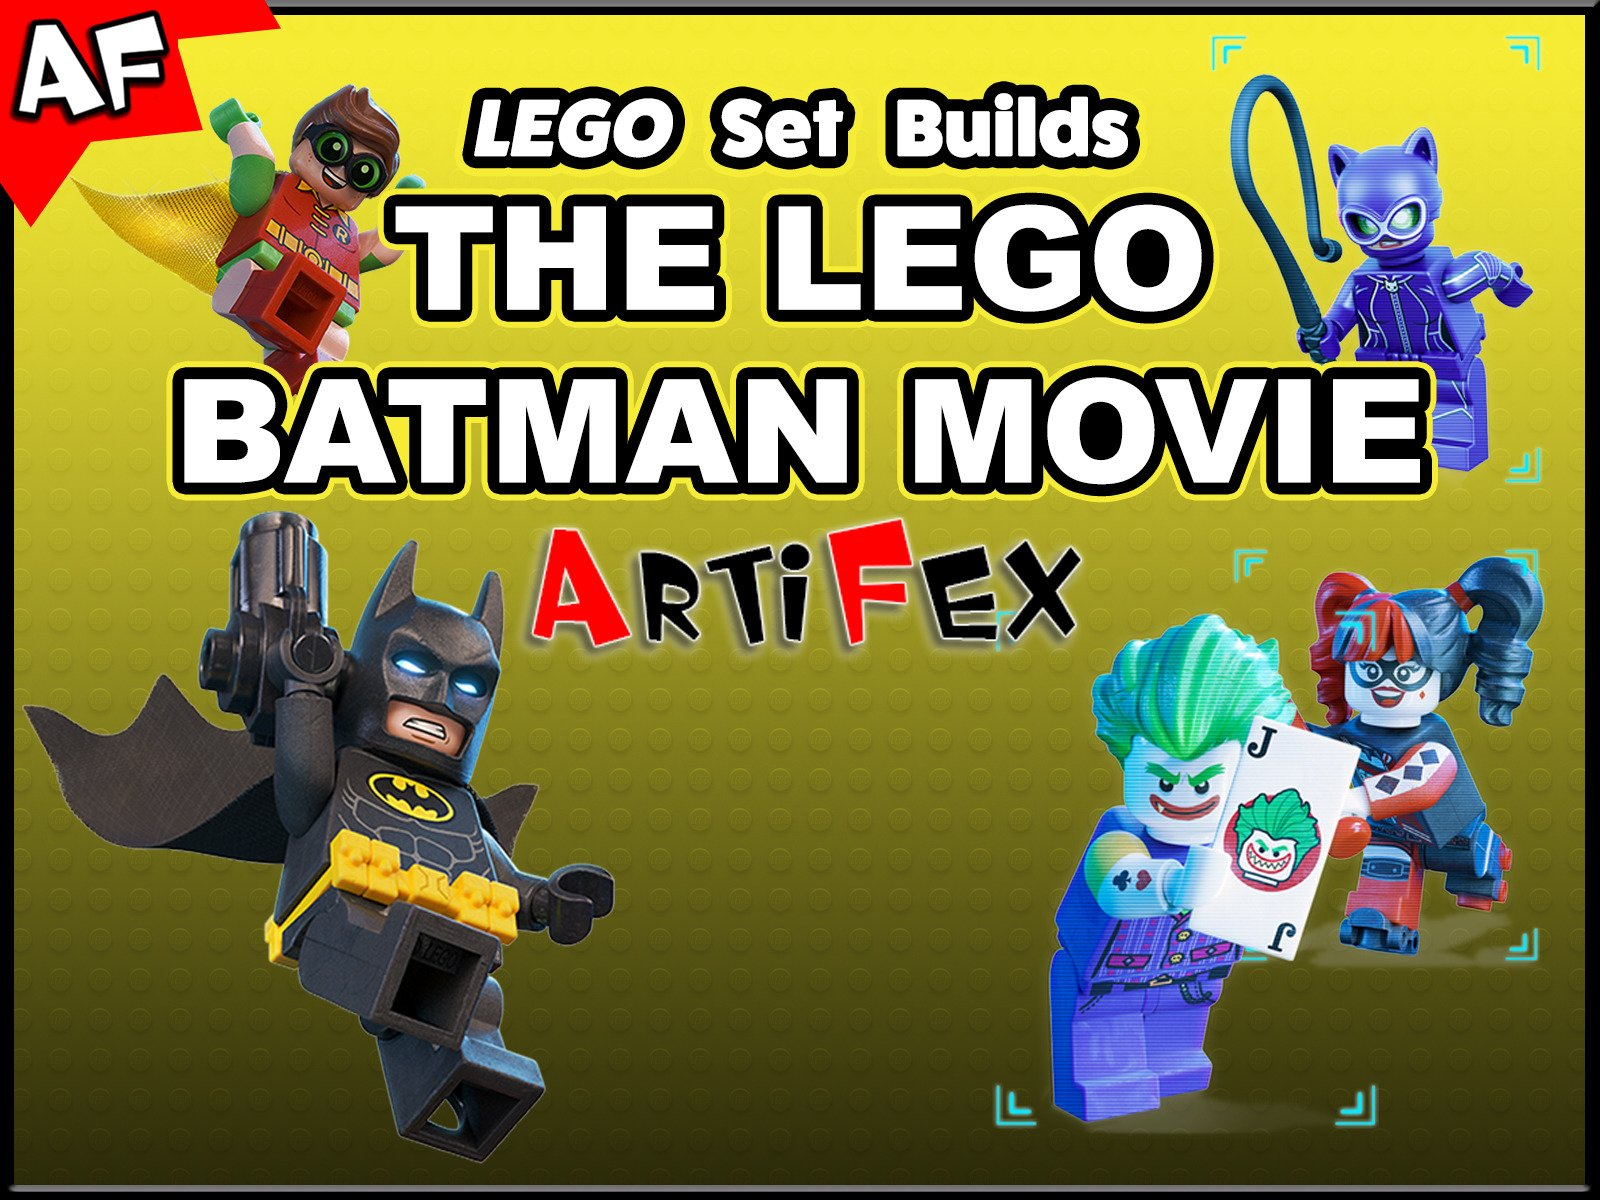 Clip: Lego Set Builds The Lego Batman Movie - Season 1